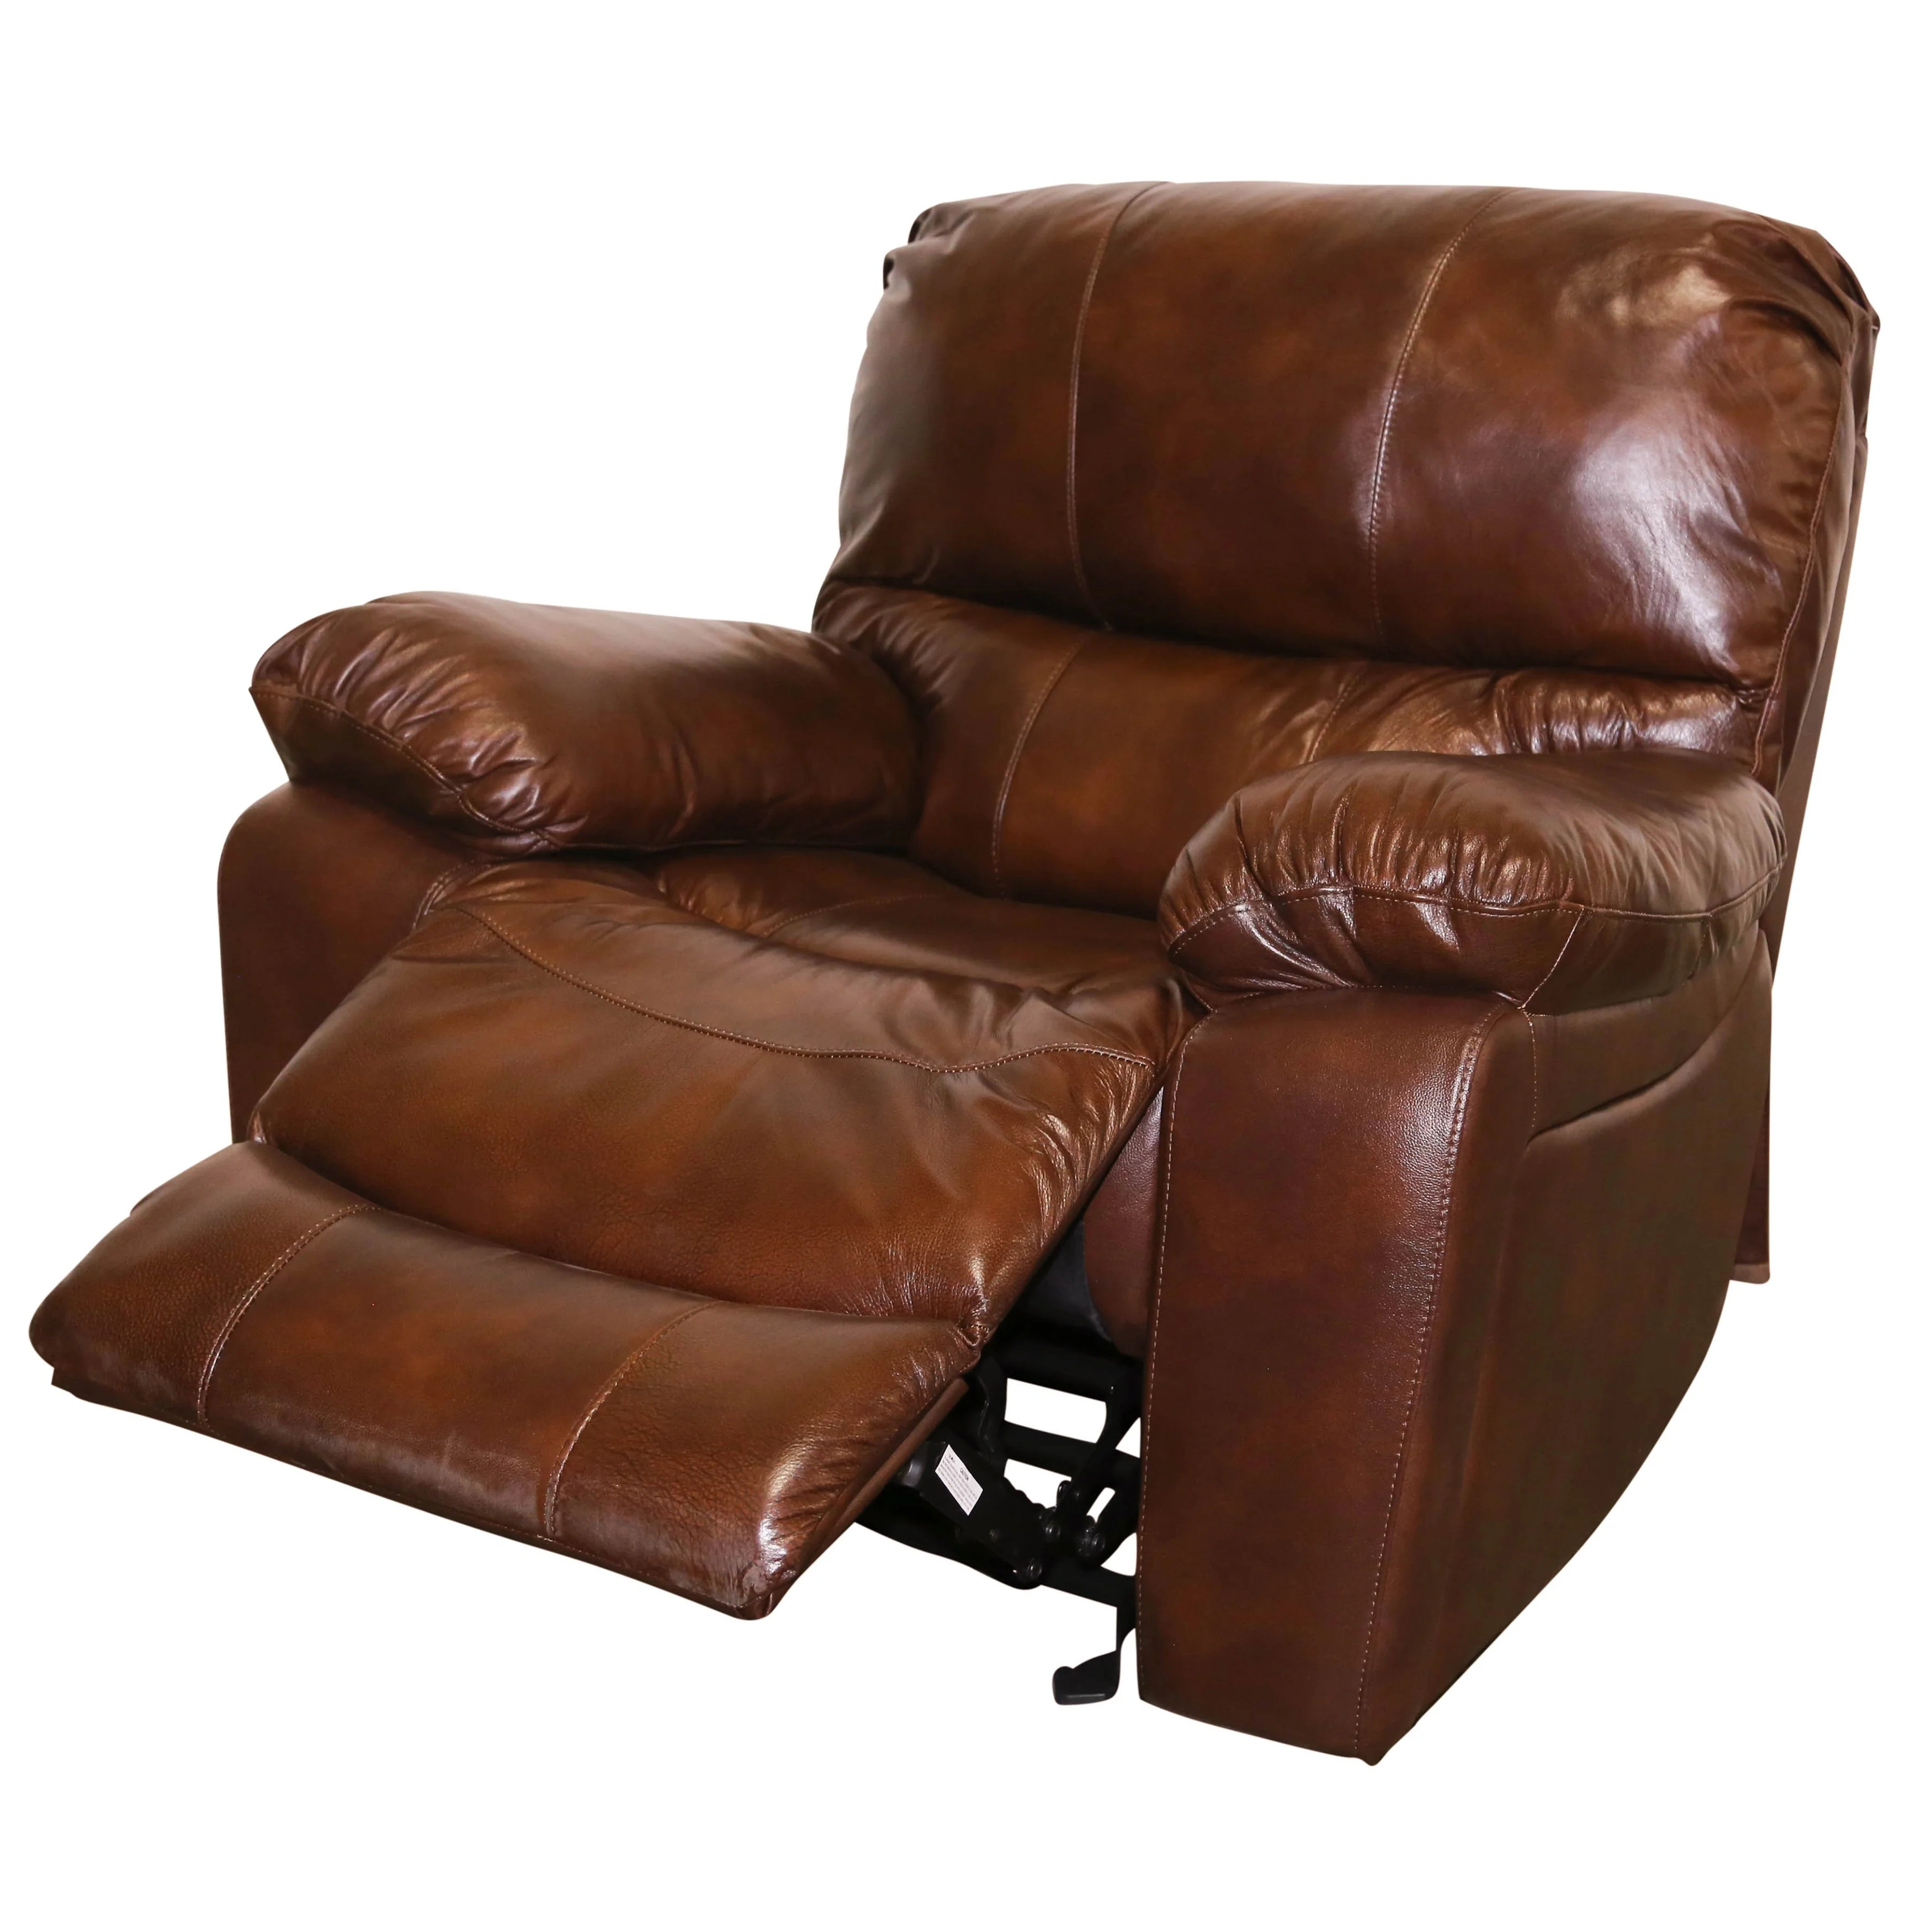 Overstock Rocking Chairs Buy Recliner Chairs And Rocking Recliners Online At